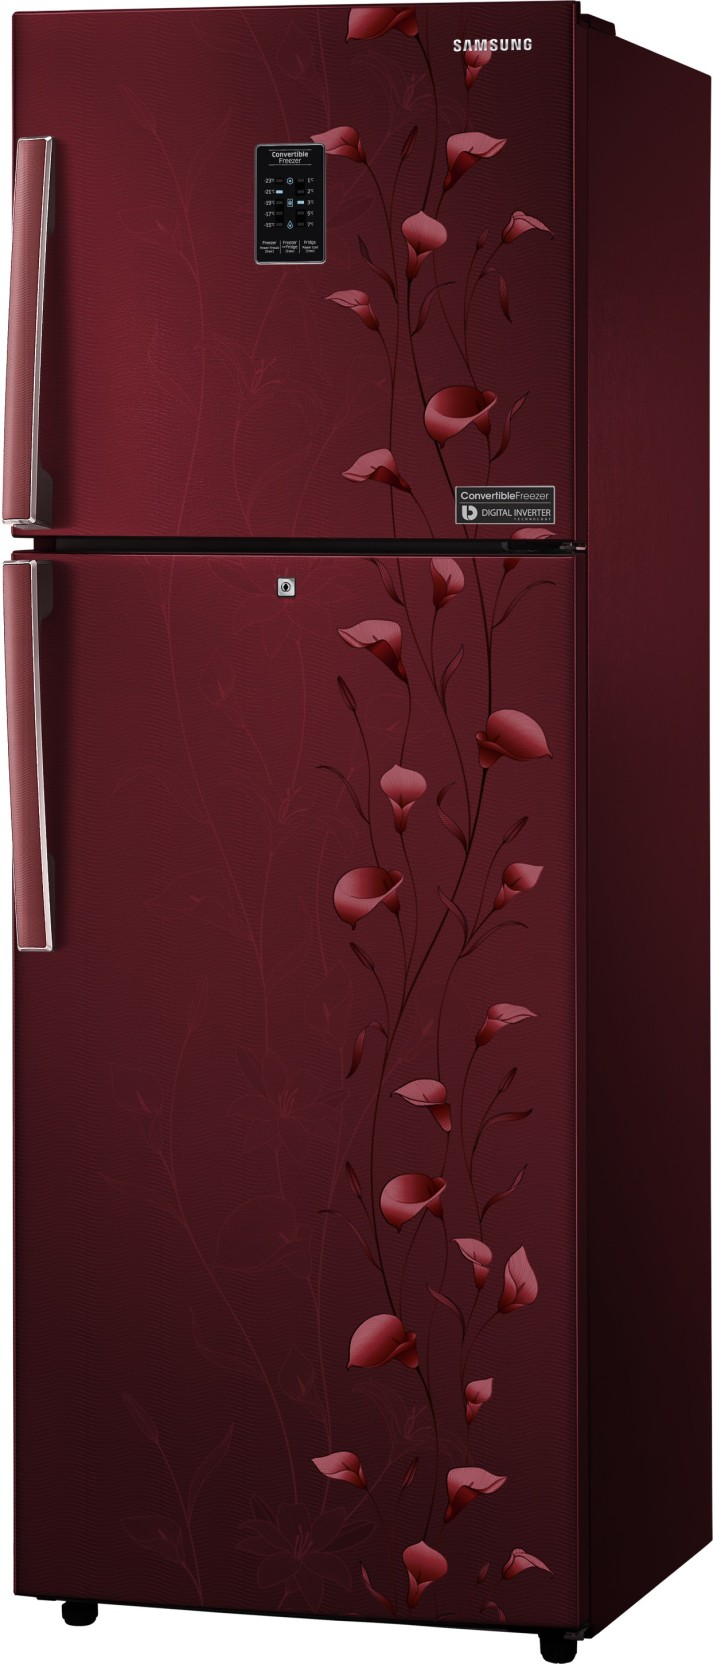 4115f842b7b Samsung 253 L Frost Free Double Door 2 Star Refrigerator (Tender Lily Red